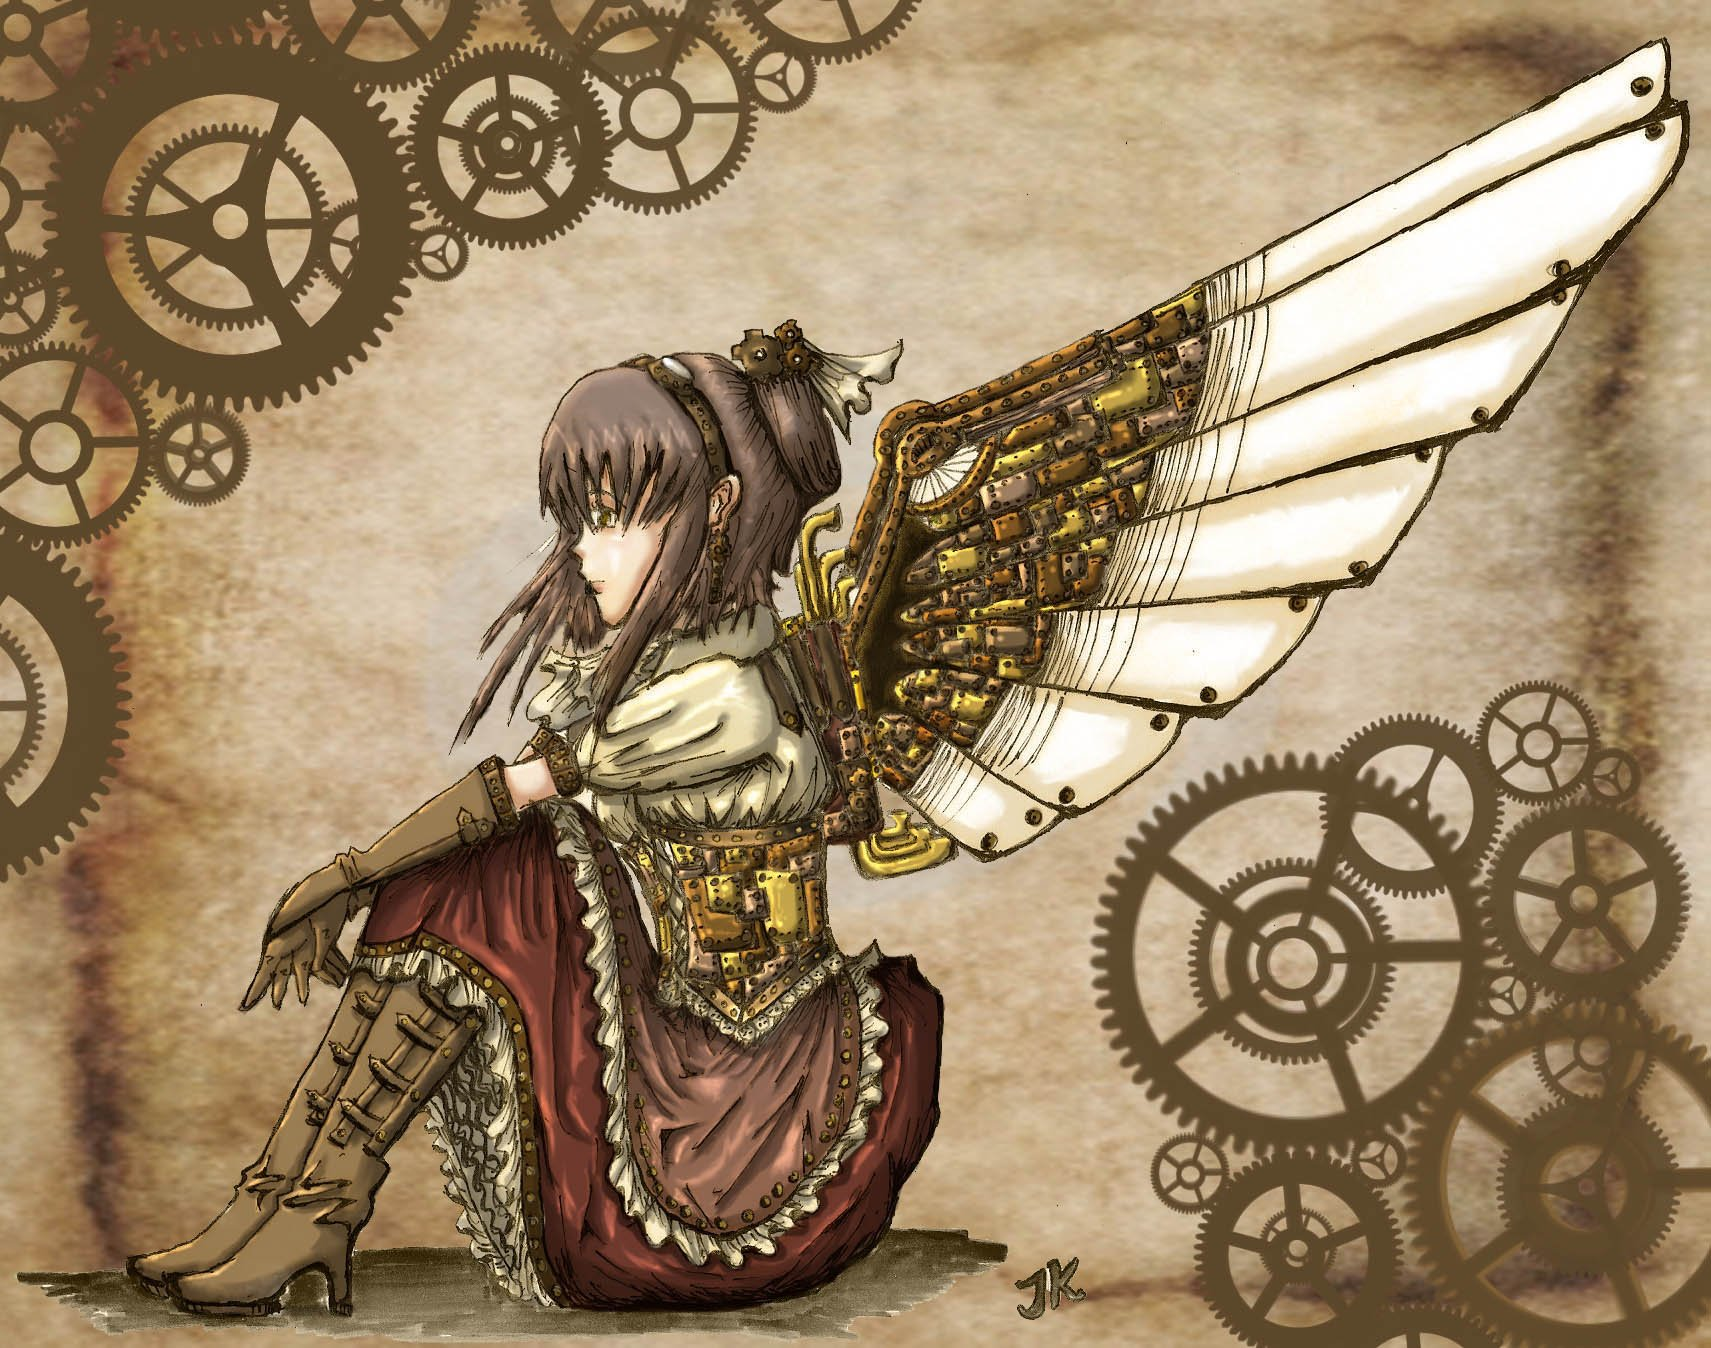 Animated Steampunk Wallpaper - WallpaperSafari